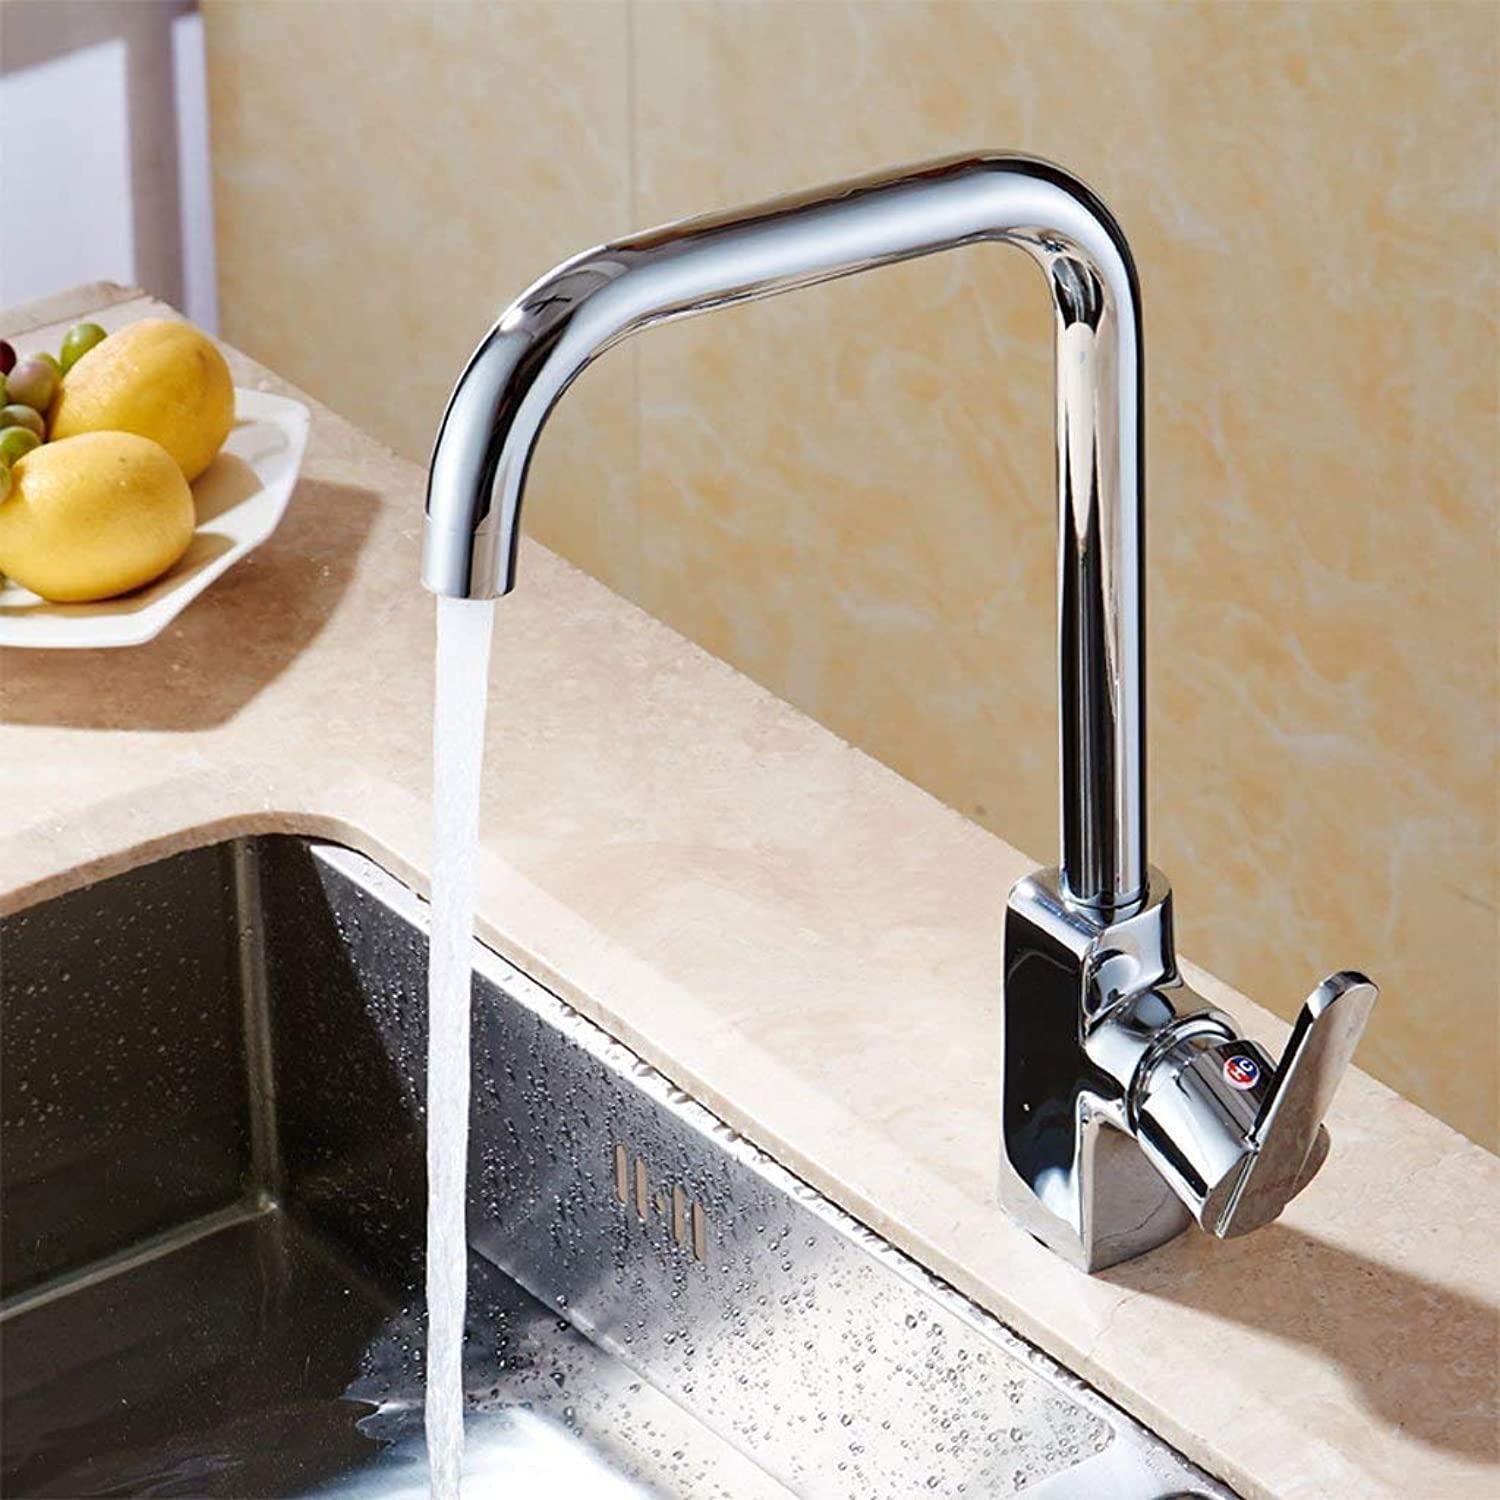 BMY Home High-end Fashion Kitchen Sink Laundry Pool Hot And Cold Faucet